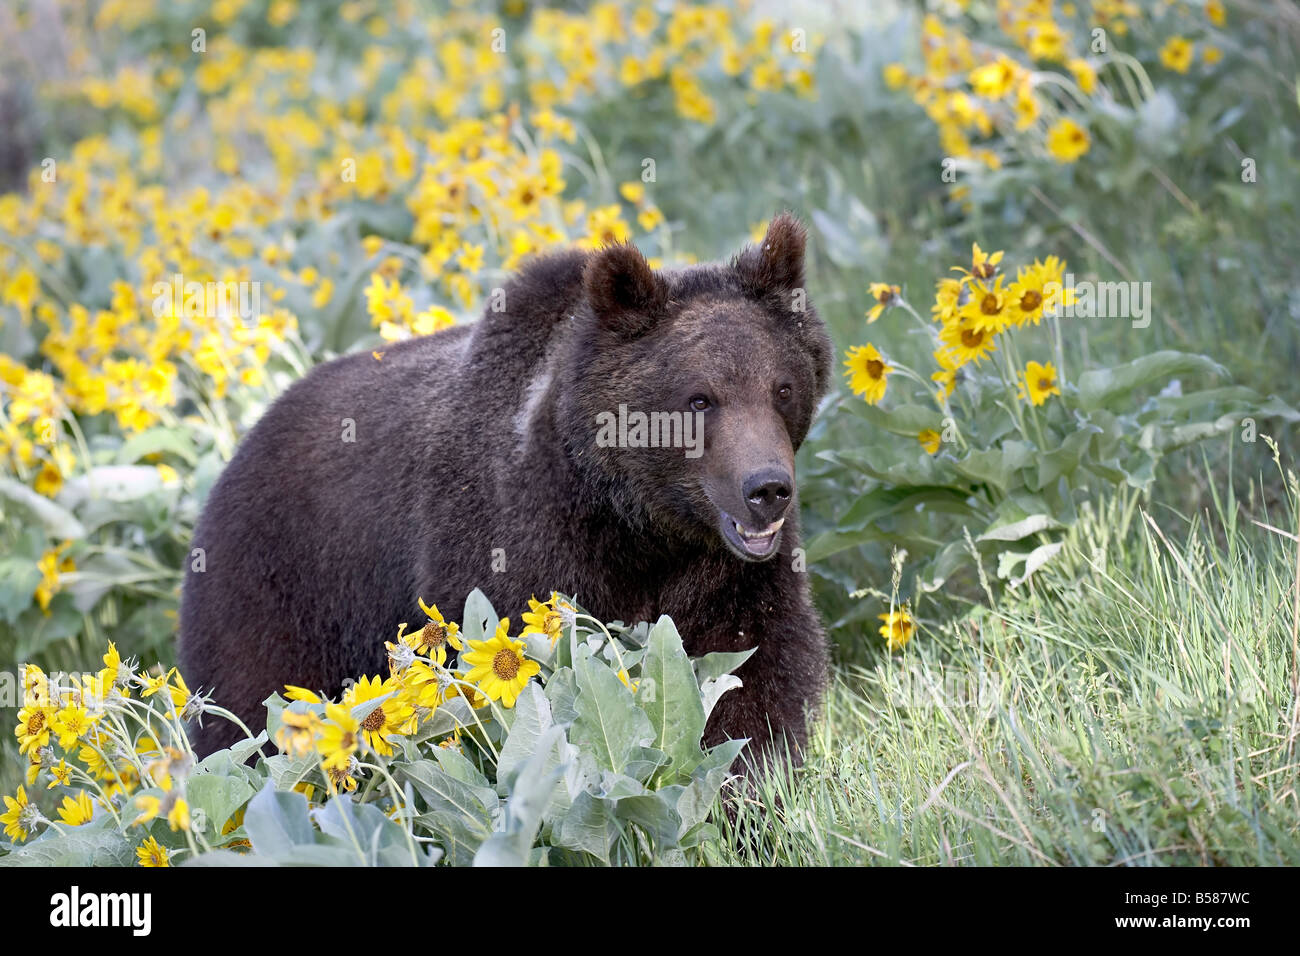 Young grizzly bear, a year and a half old, in captivity, among arrowleaf balsam root, Bozeman, Montana - Stock Image